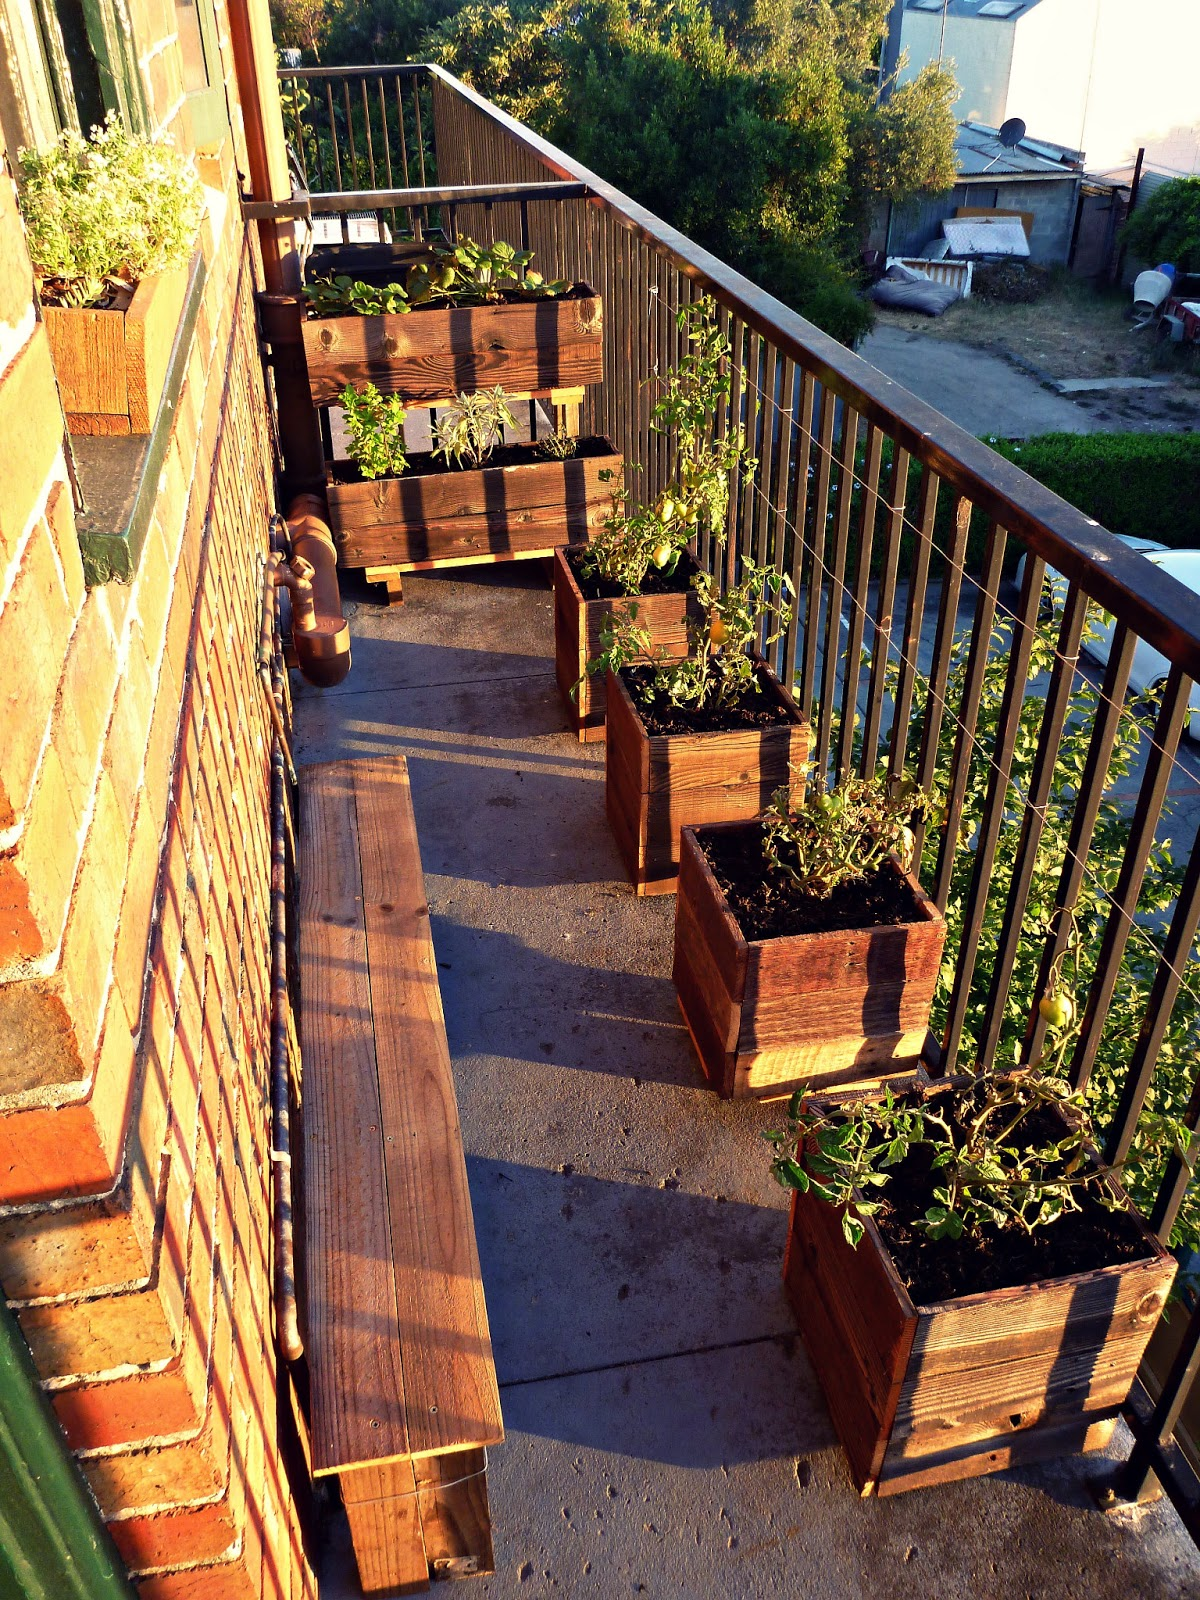 Urban growth my first garden balcony installation for Small balcony garden ideas pictures